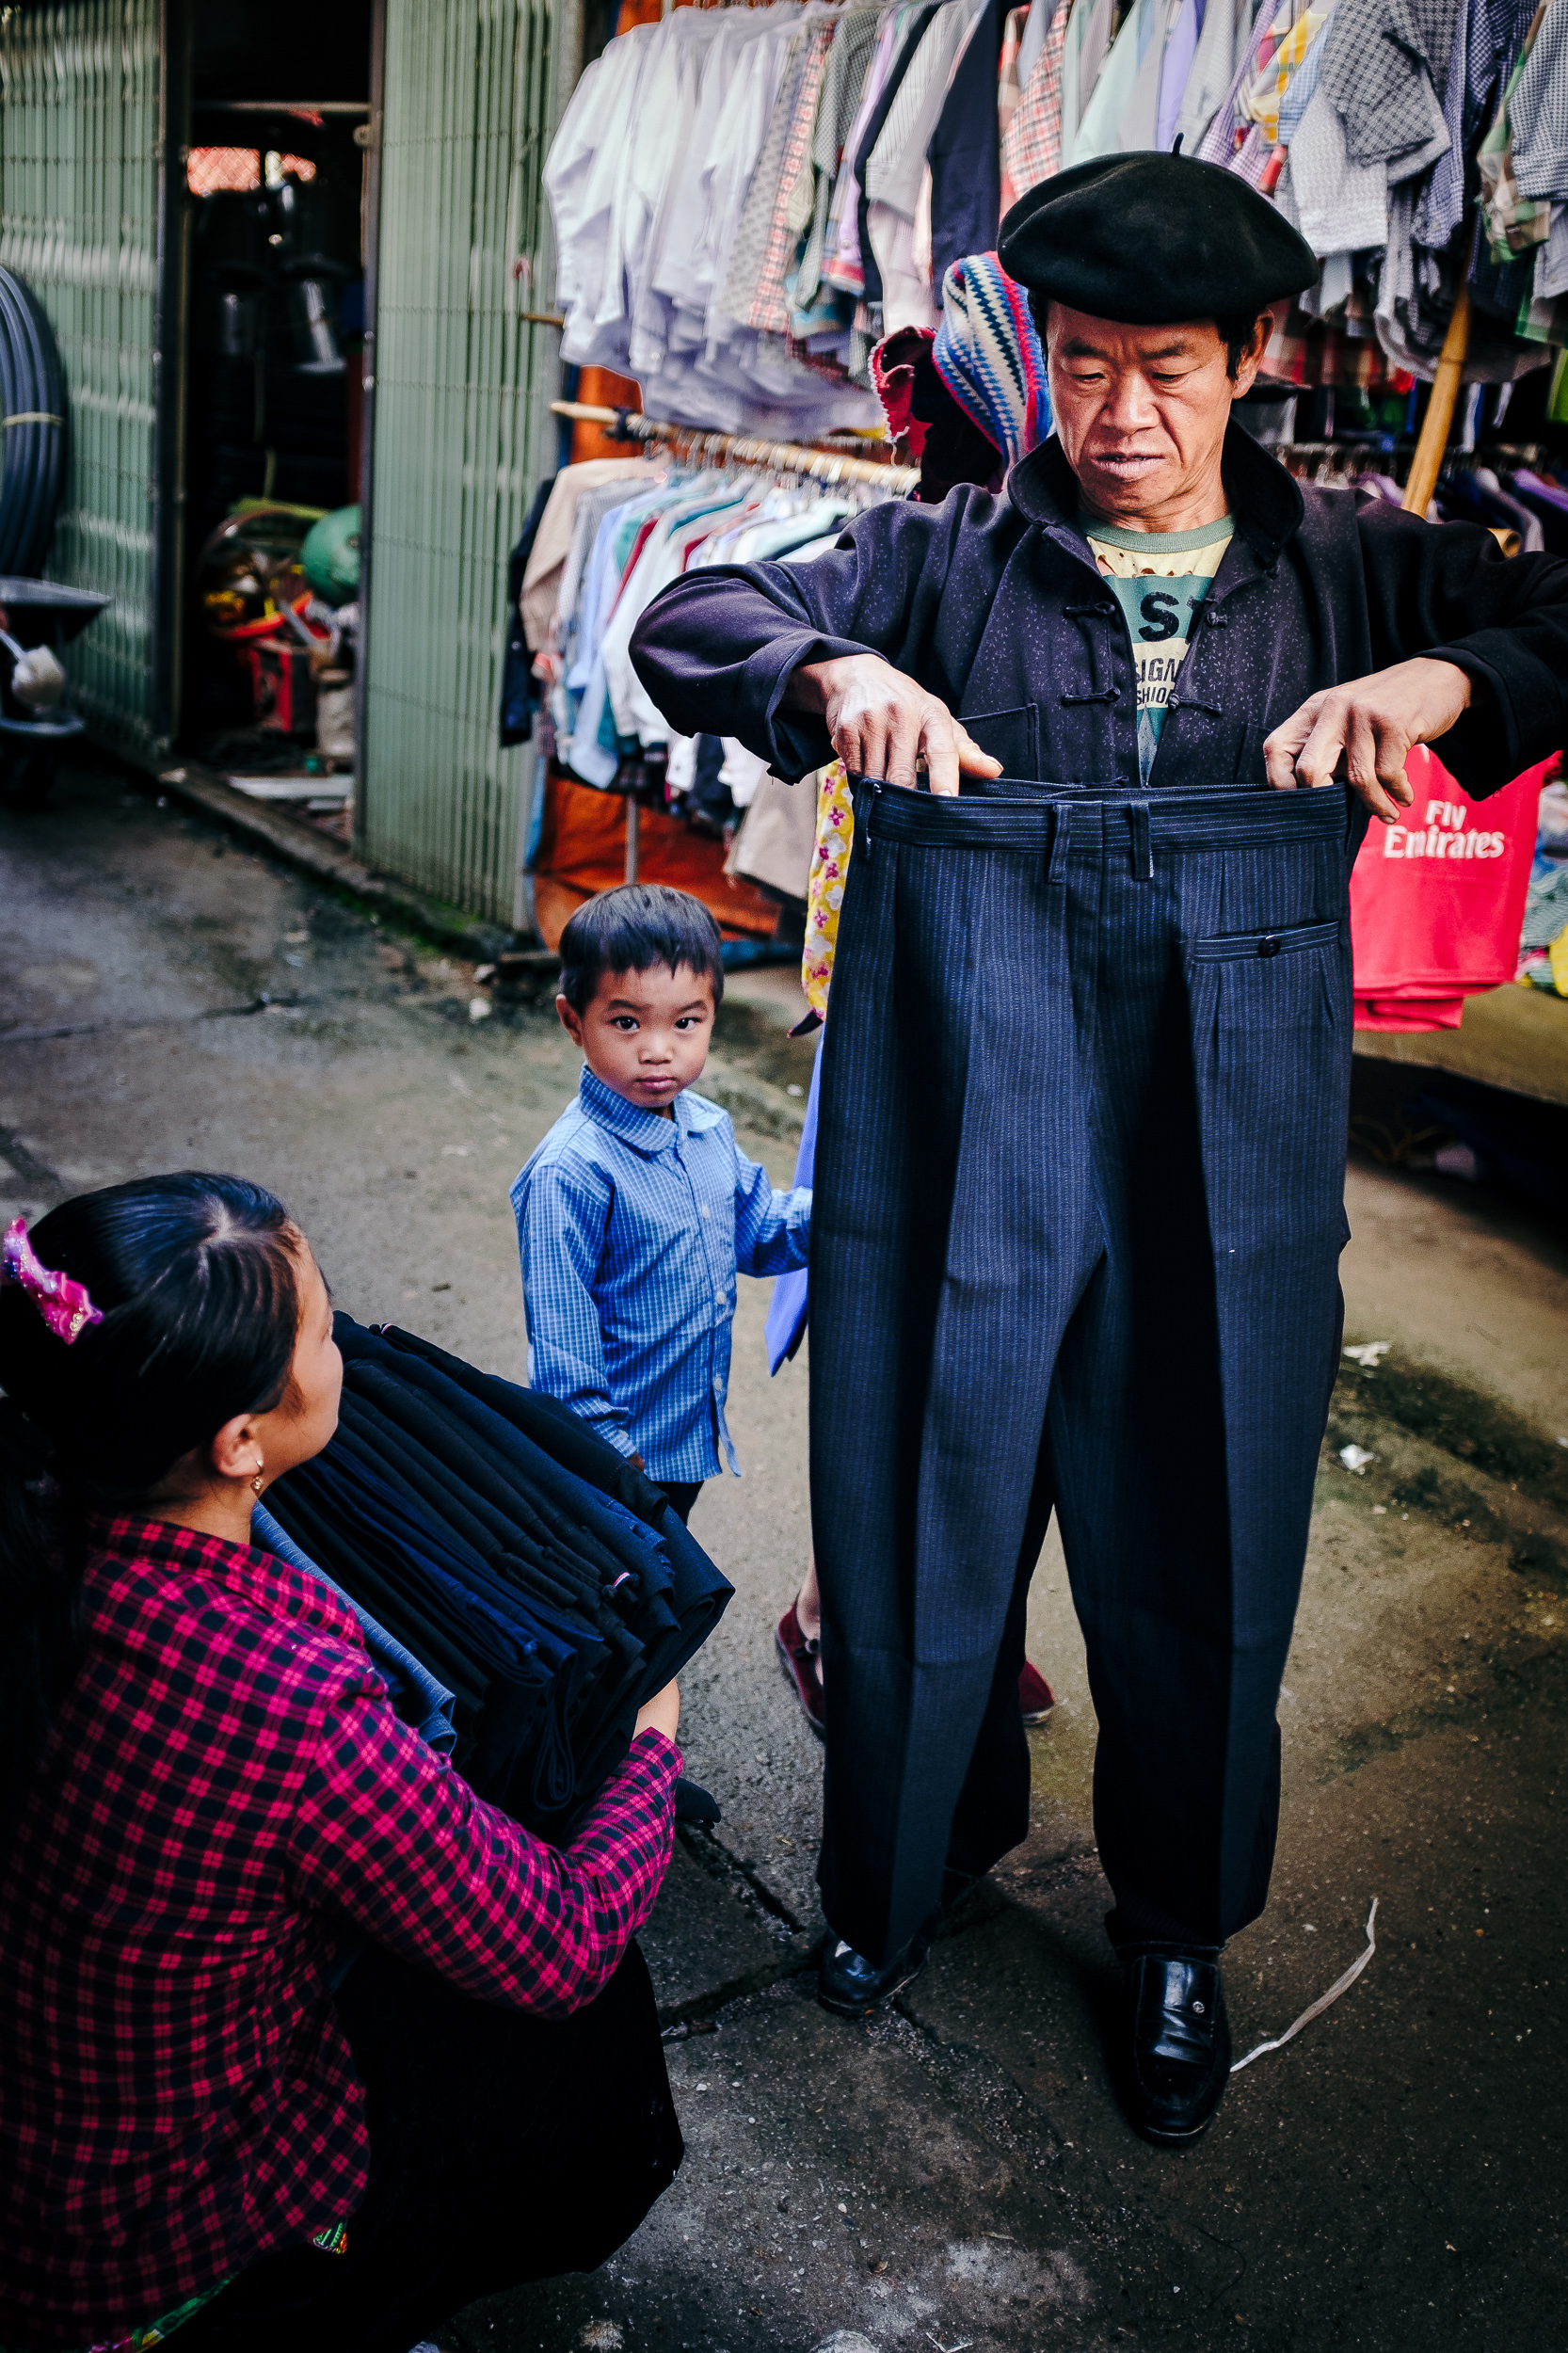 A man measuring the size of his trouser in Dong van market